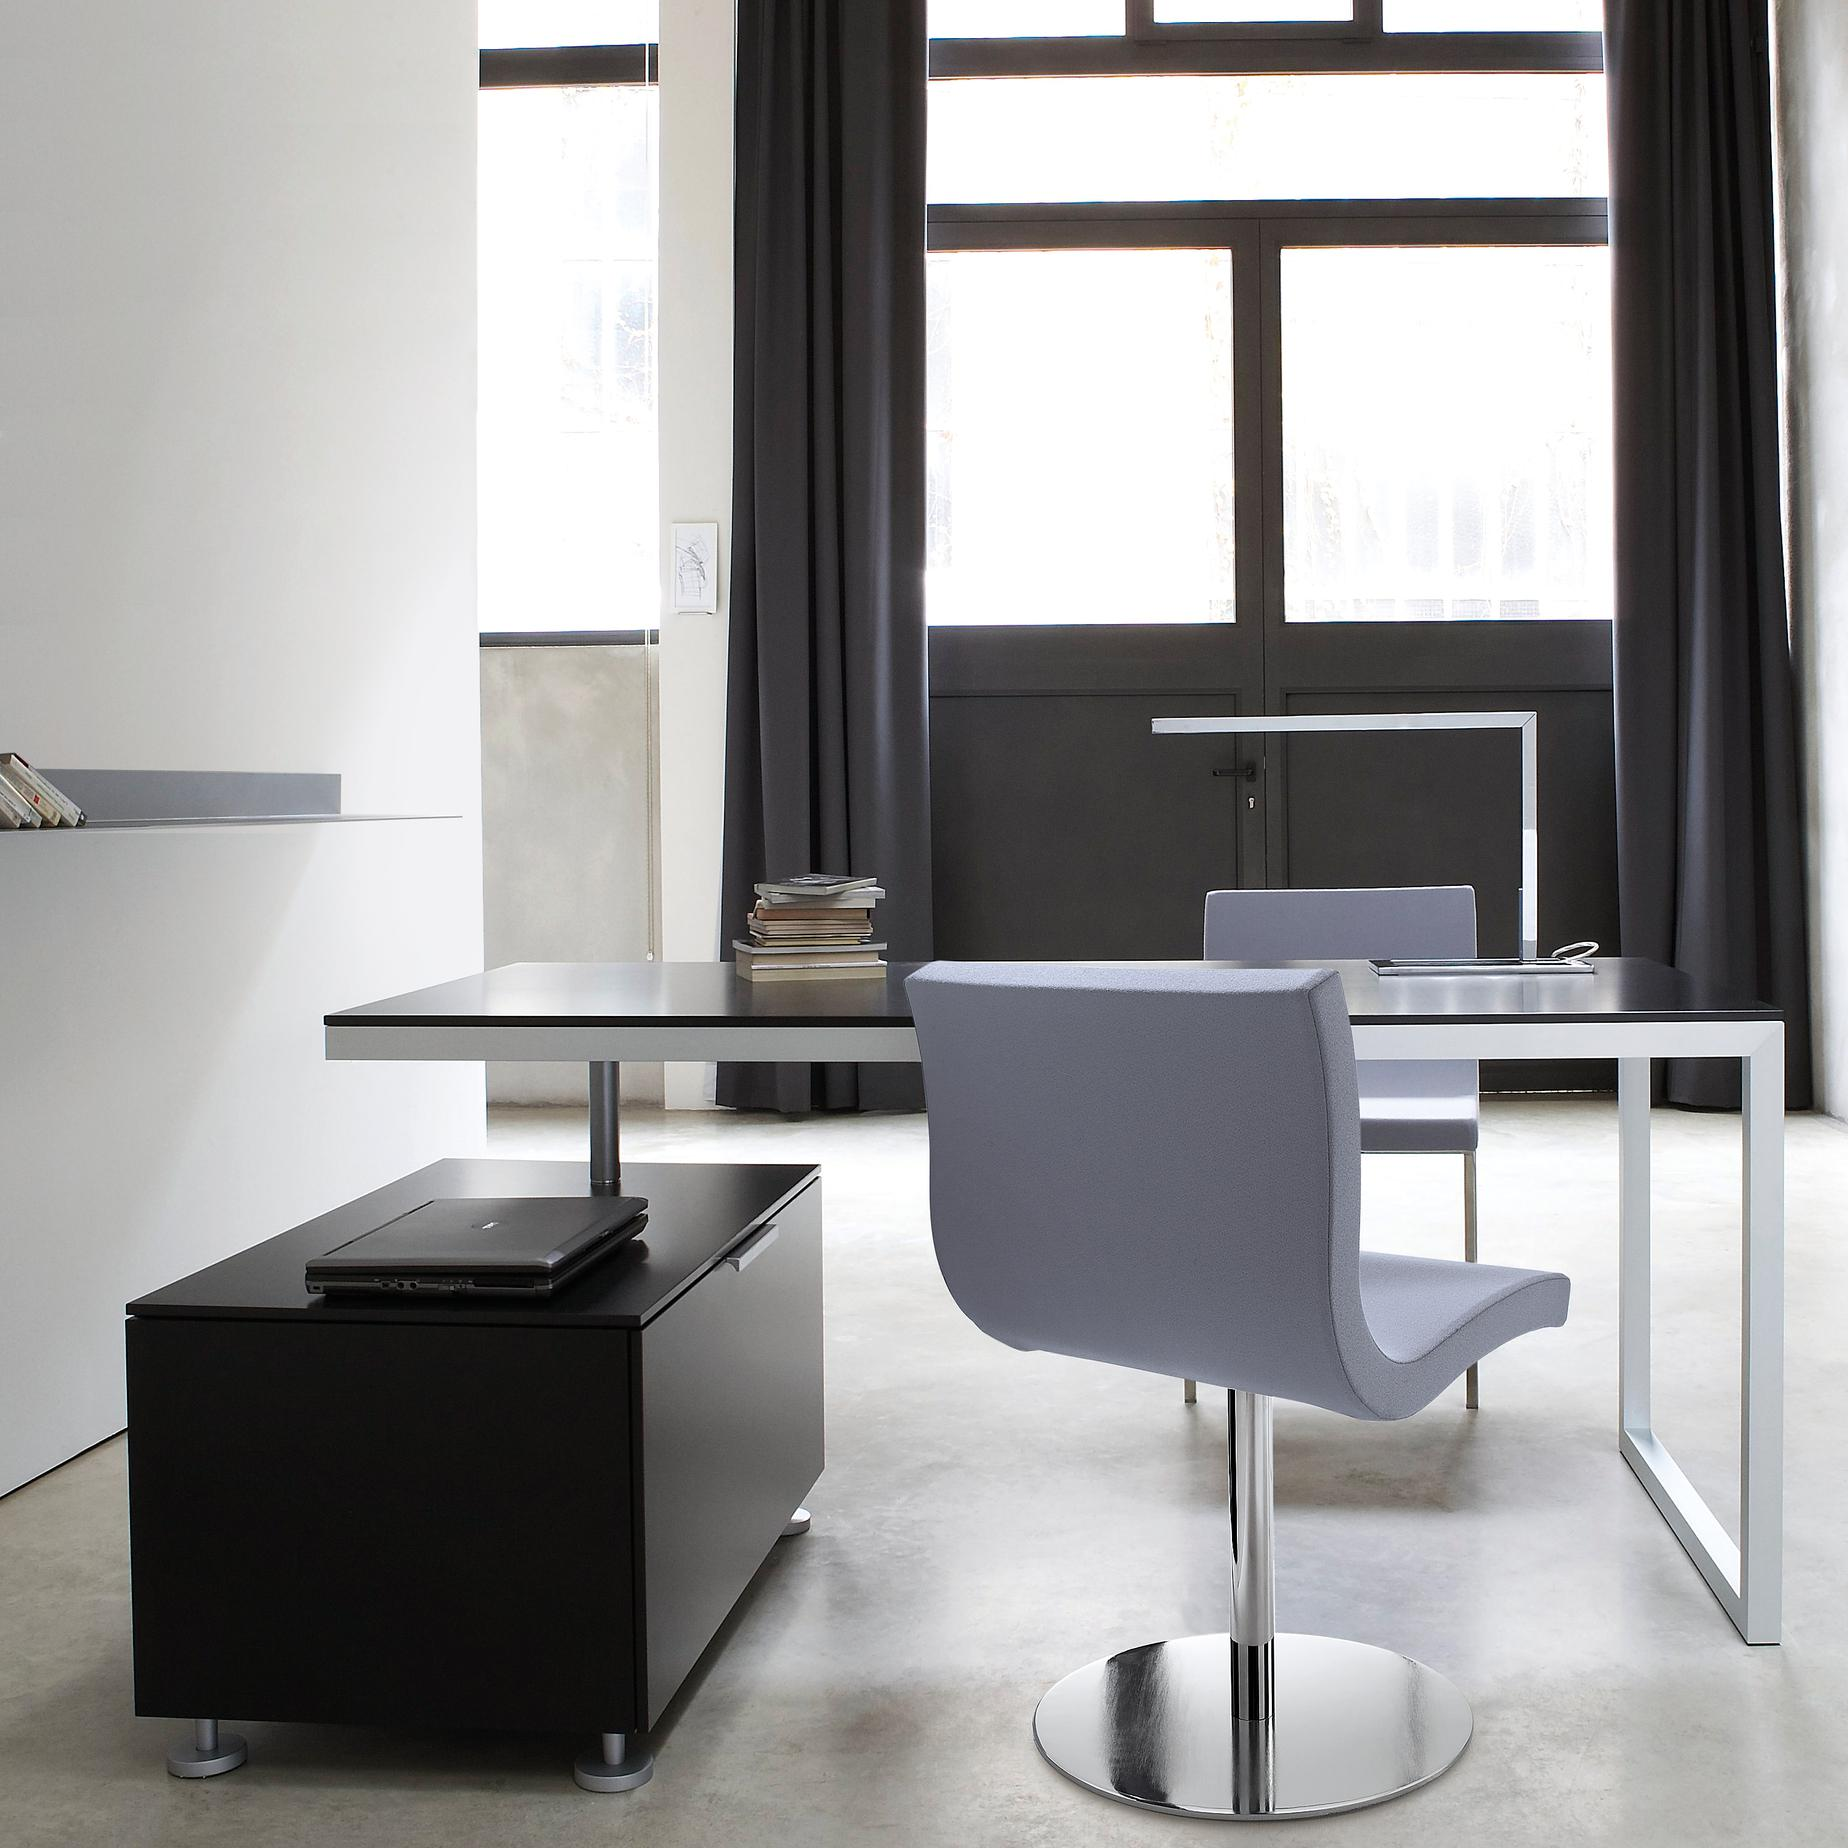 Everywhere Desks Secretaires Designer Christian Werner  # Muebles Saint Michel